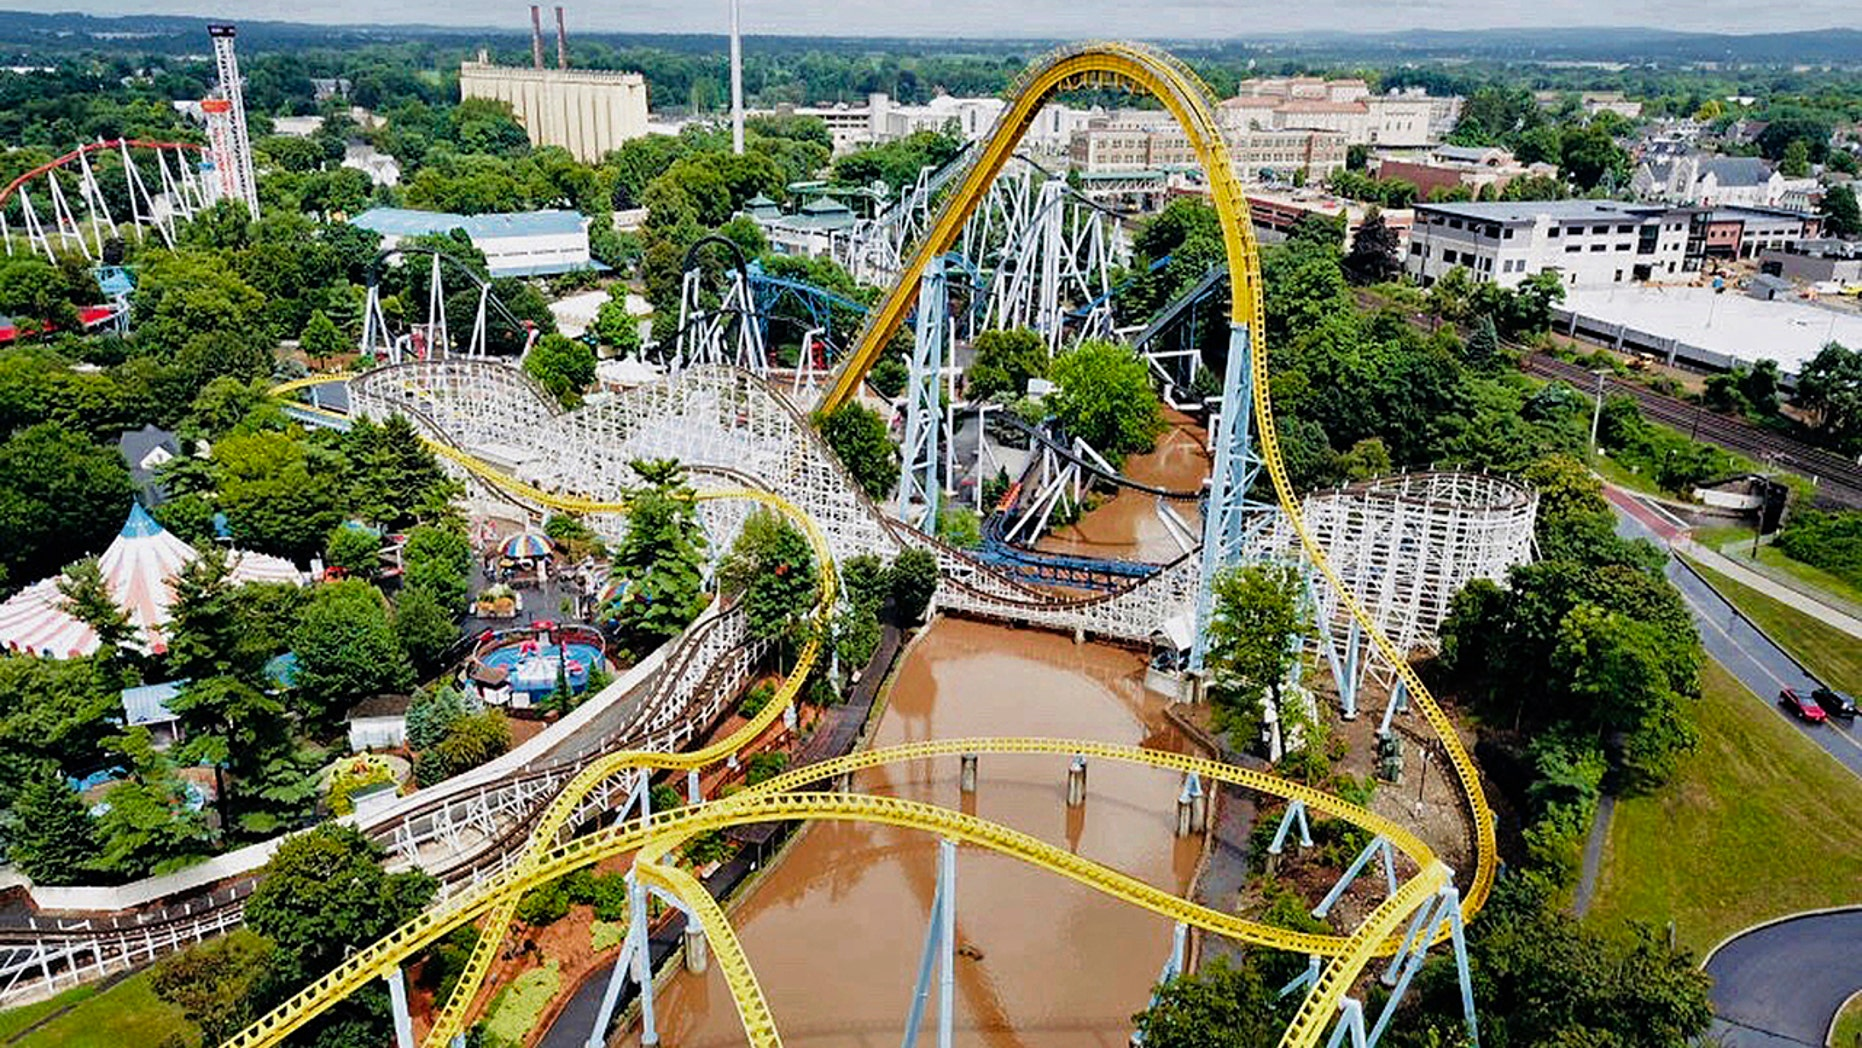 In this Monday, July 23, 2018, aerial image provided by The Wyse Choice photography in Hershey, Pa., muddy brown floodwaters in Spring Creek flow beneath the Skyrush roller coaster, in yellow.